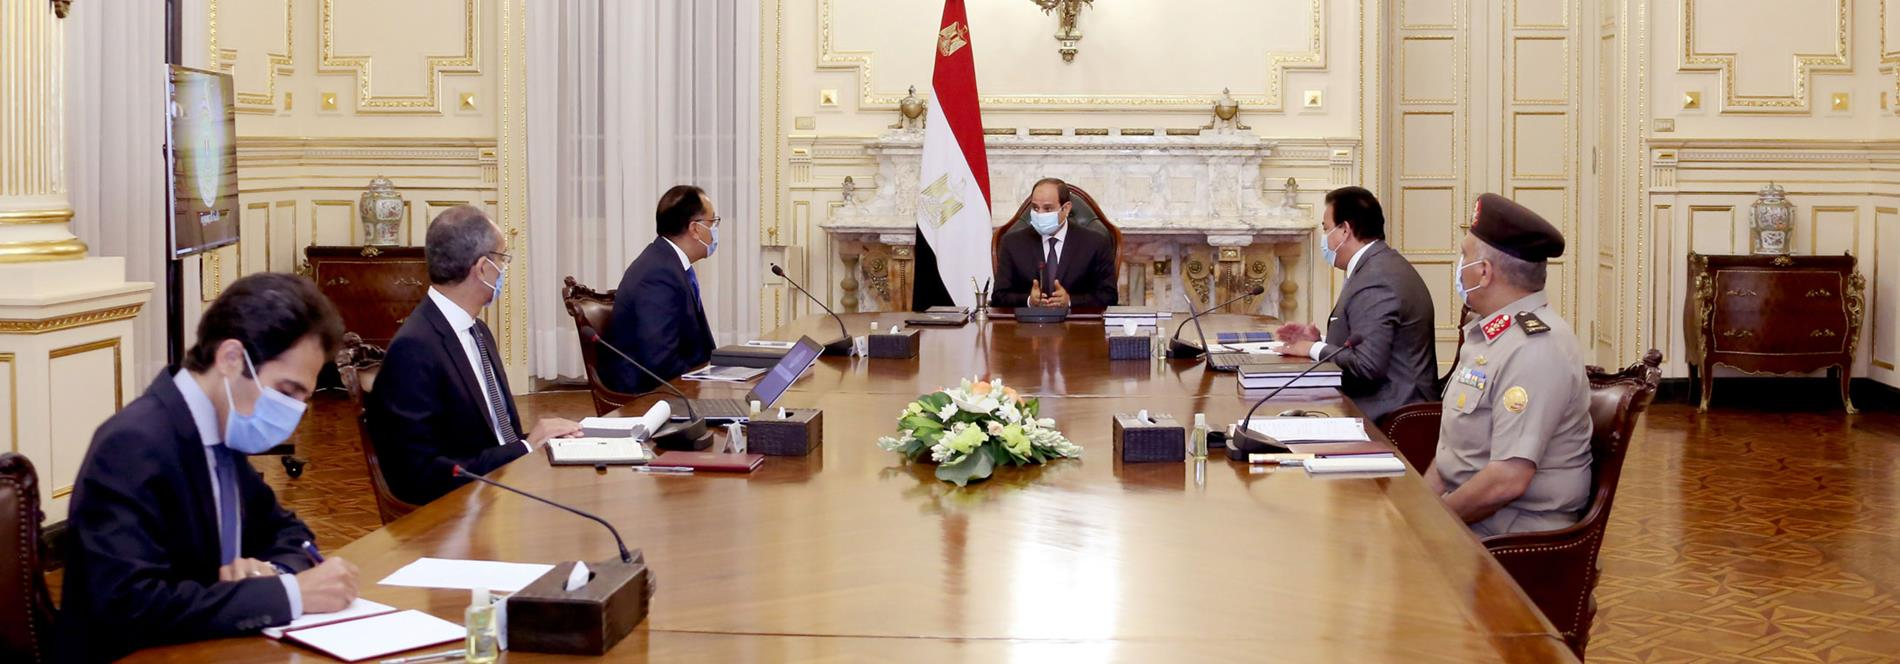 President El-Sisi Meets with PM and Some Ministers